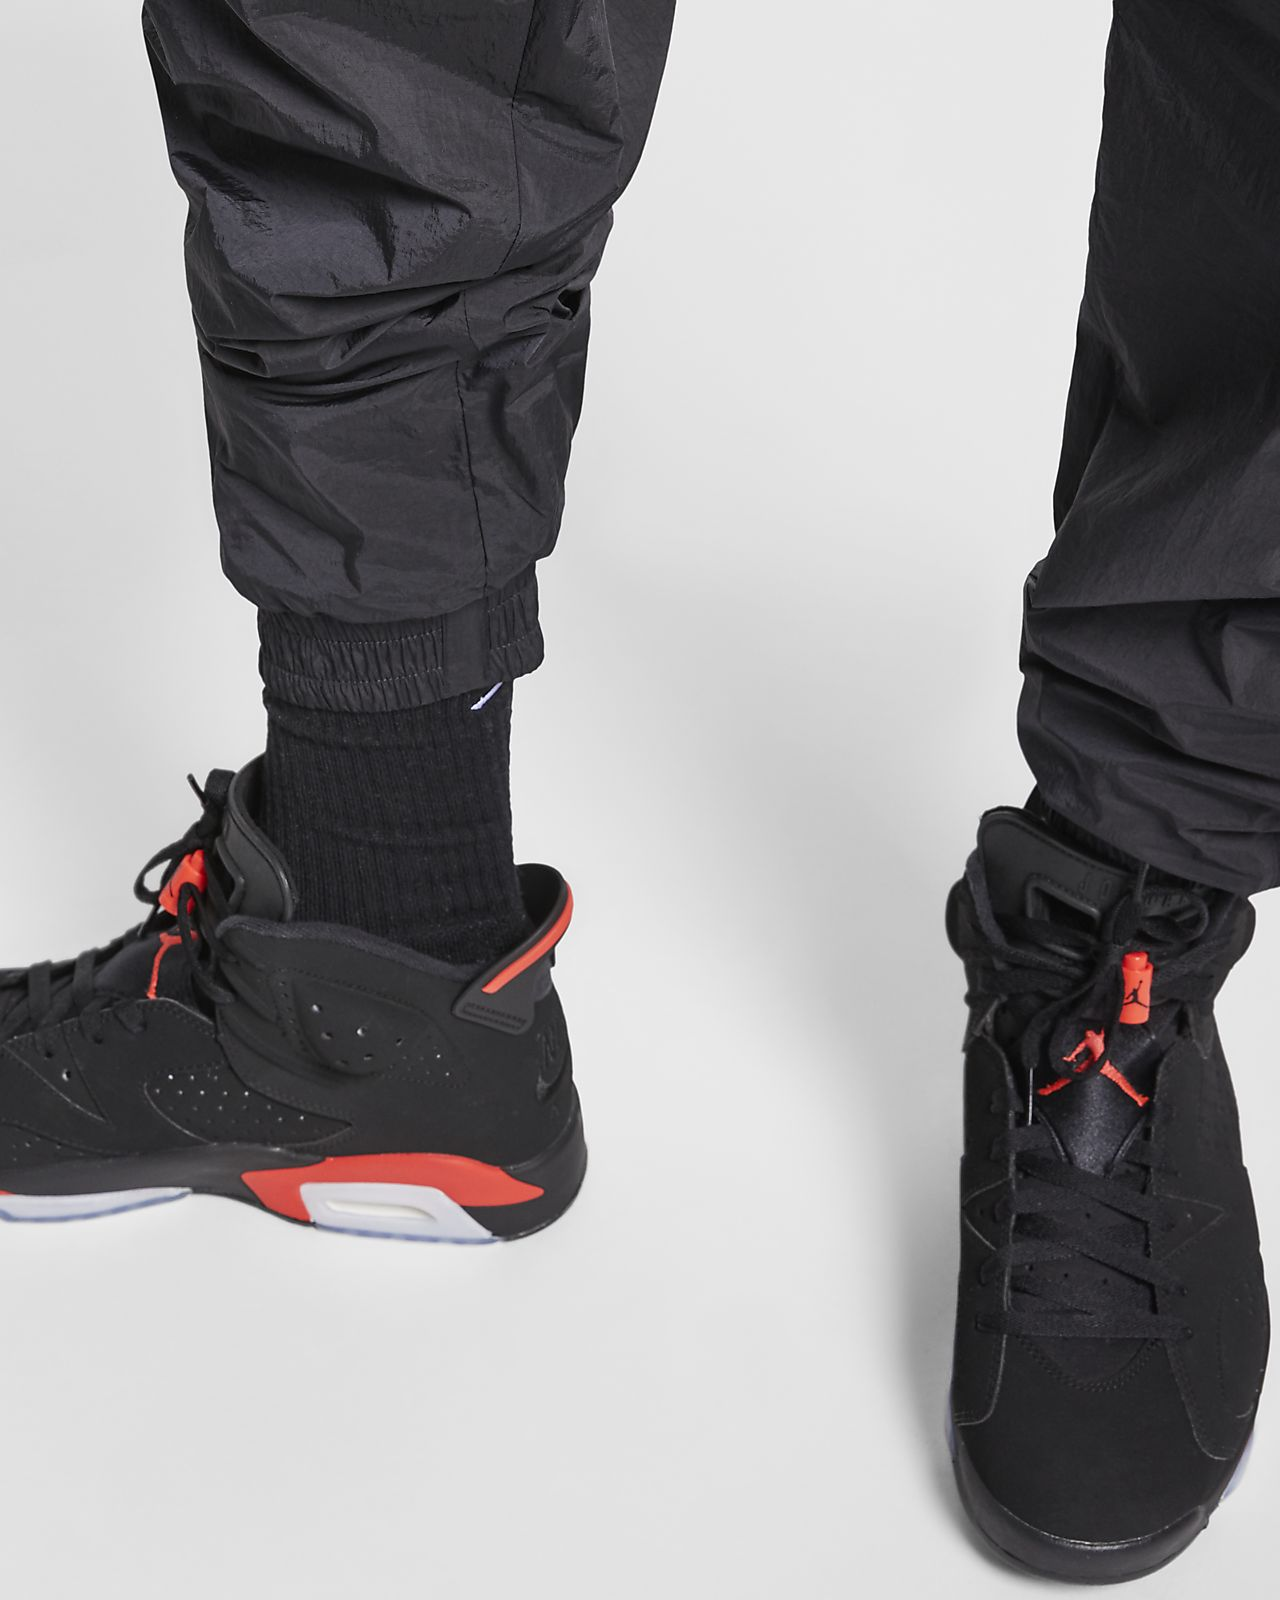 taille 40 346d7 b7e52 Jordan Flight Warm-Up Pants